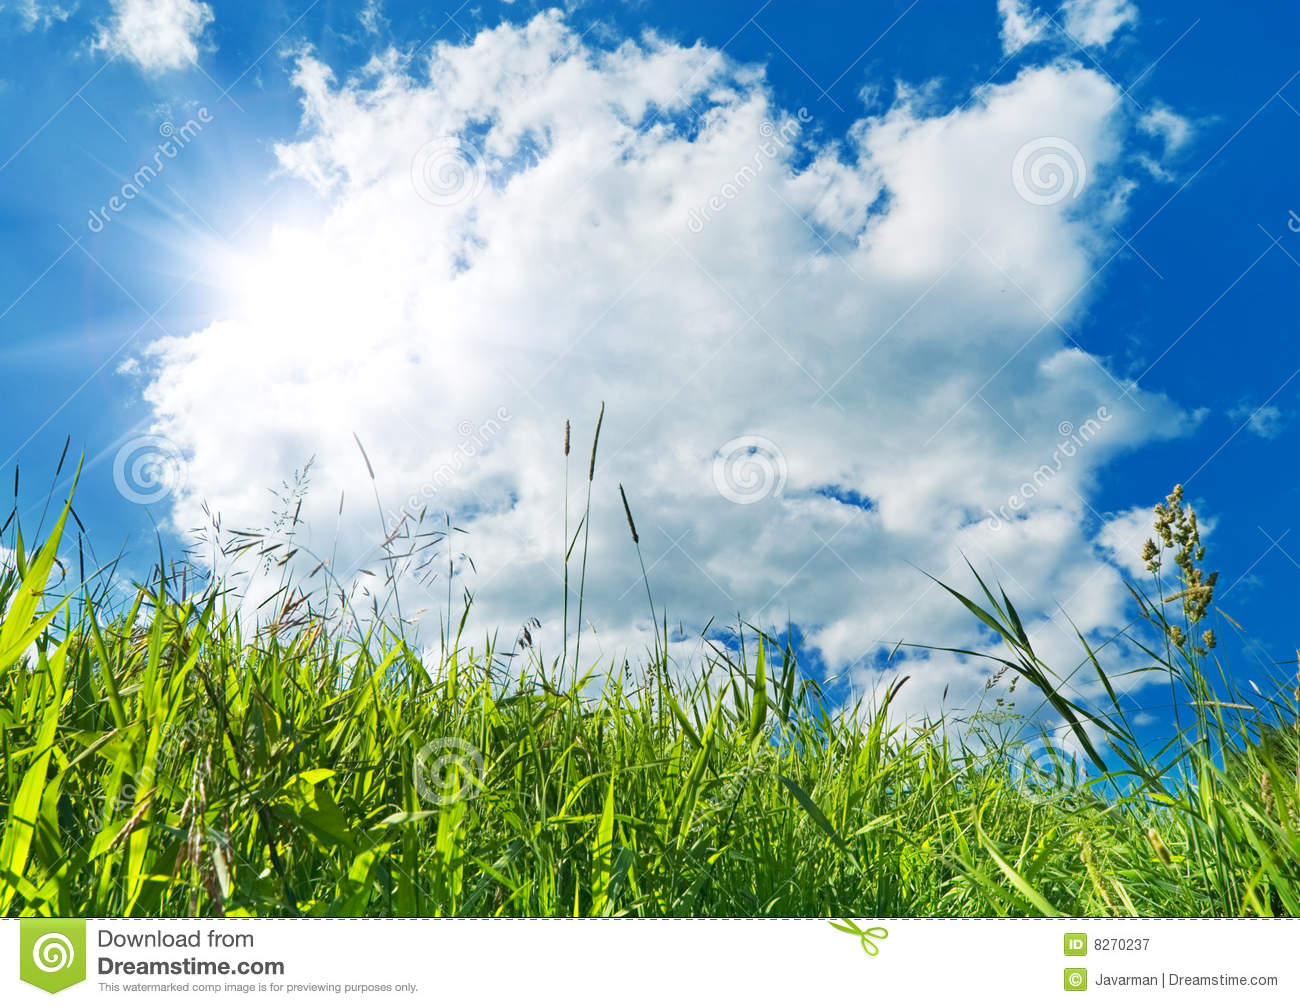 Green Grass And Blue Sky Background Royalty Free Stock ...